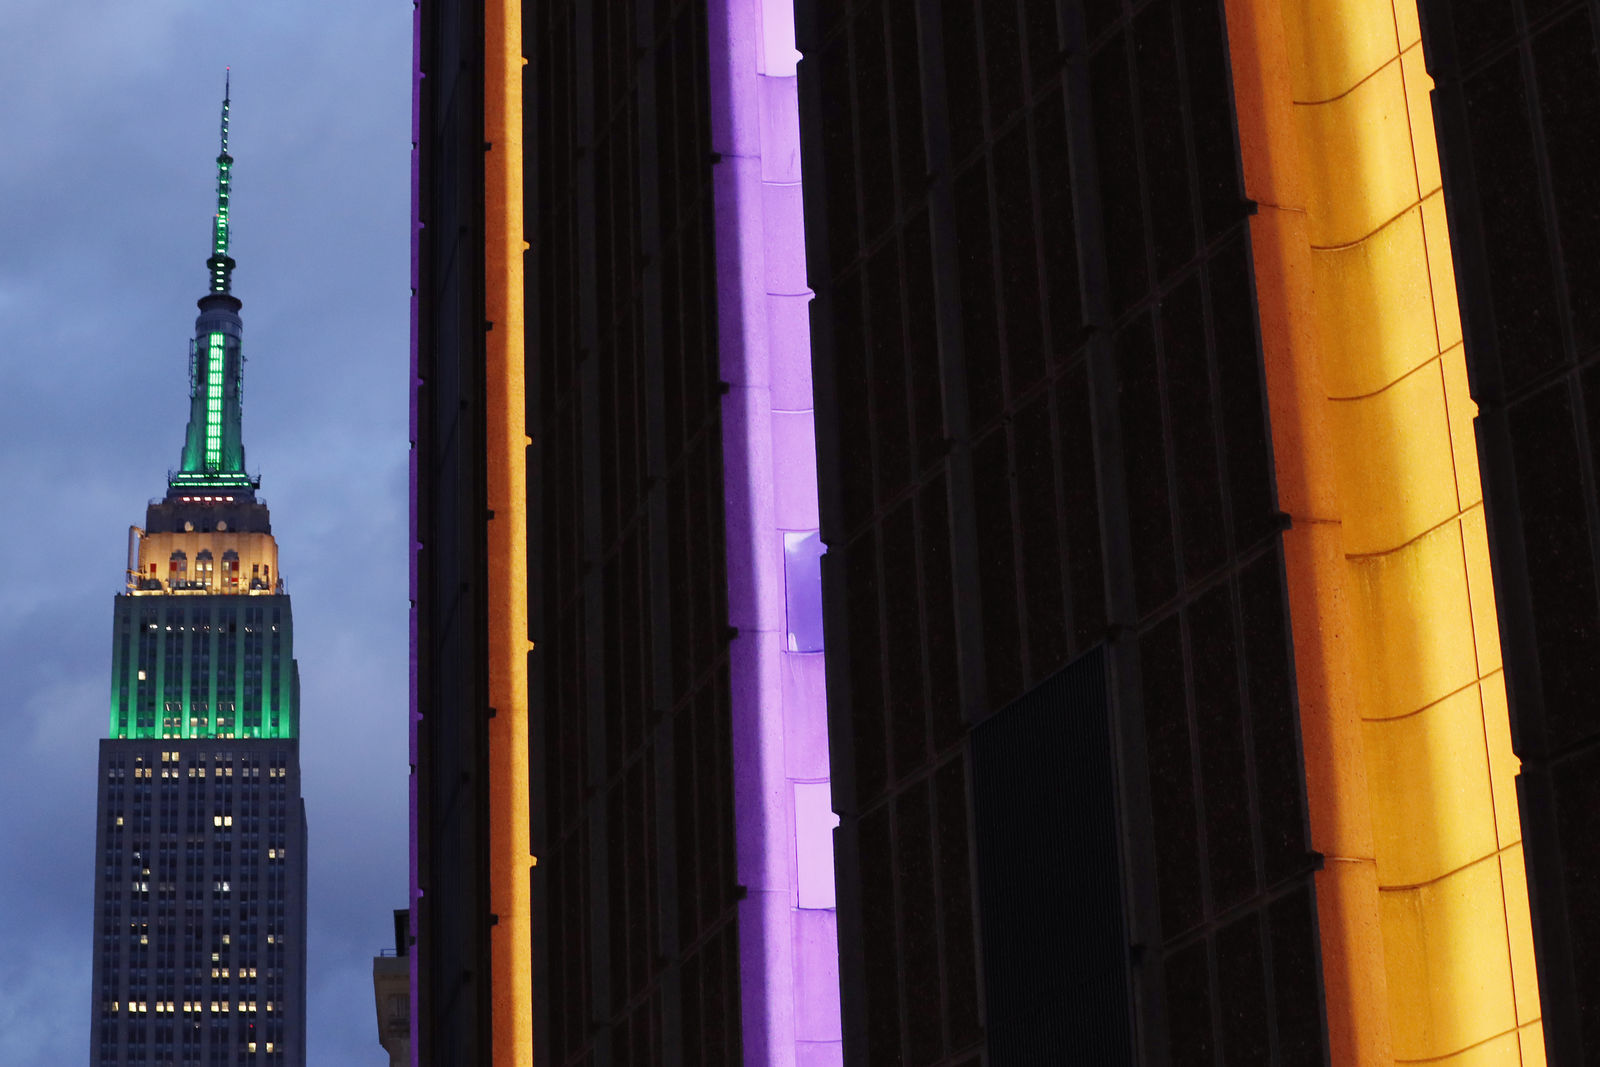 The exterior of Madison Square Garden, right, is colored orange and purple, as the Empire State Building in the wak of the death of retired NBA star Kobe Bryant before the start of a basketball game between the Brooklyn Nets and the New York Knicks, Sunday, Jan. 26, 2020, in New York. (AP Photo/Kathy Willens)